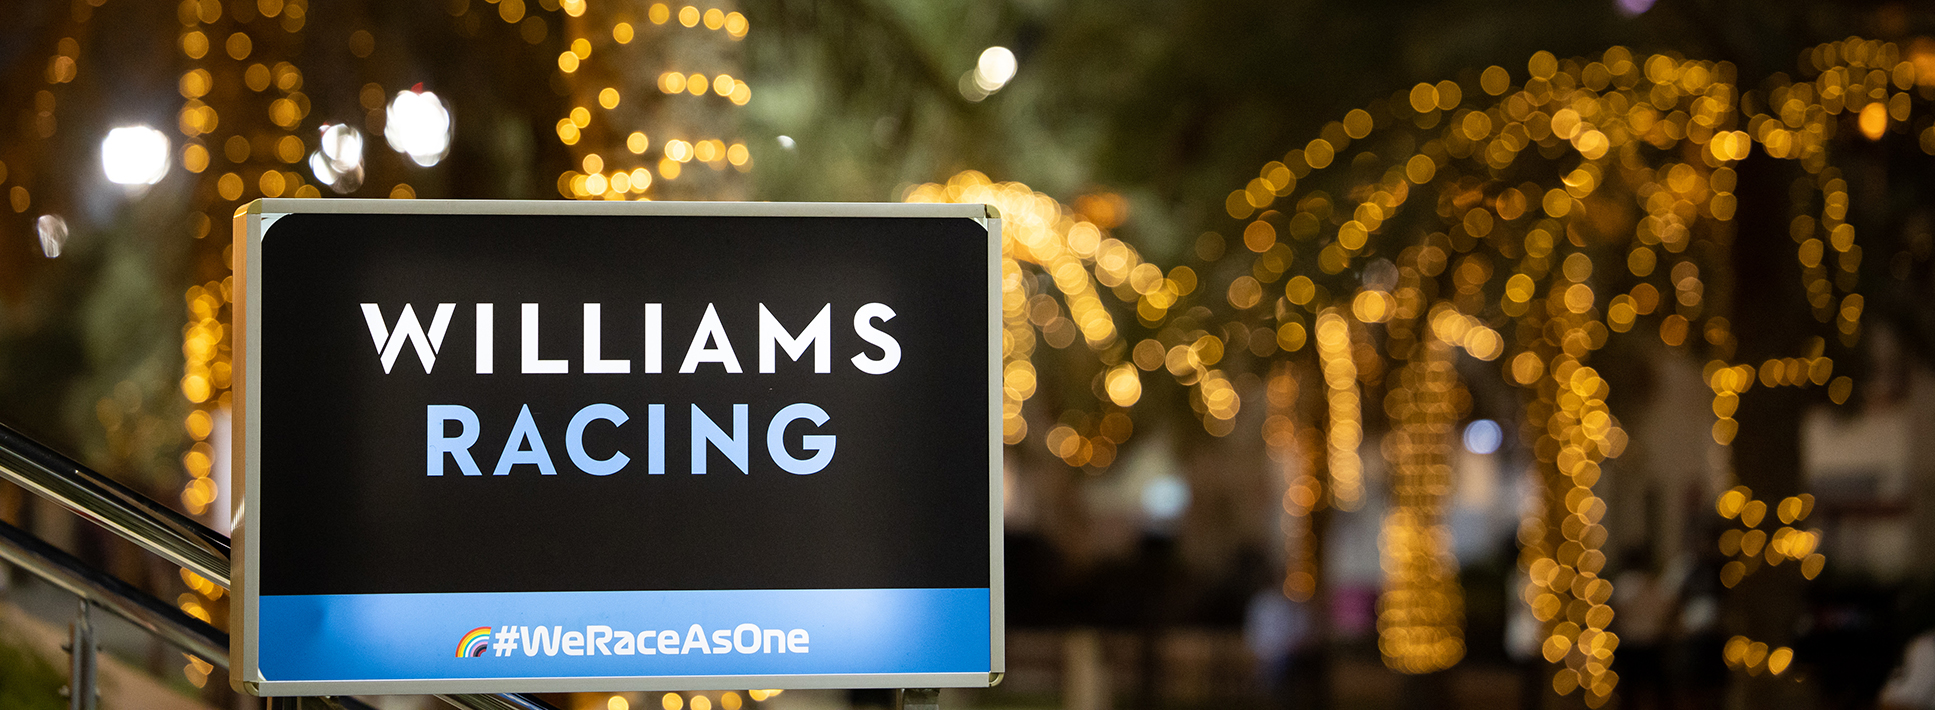 Williams Racing Commercial Proposition